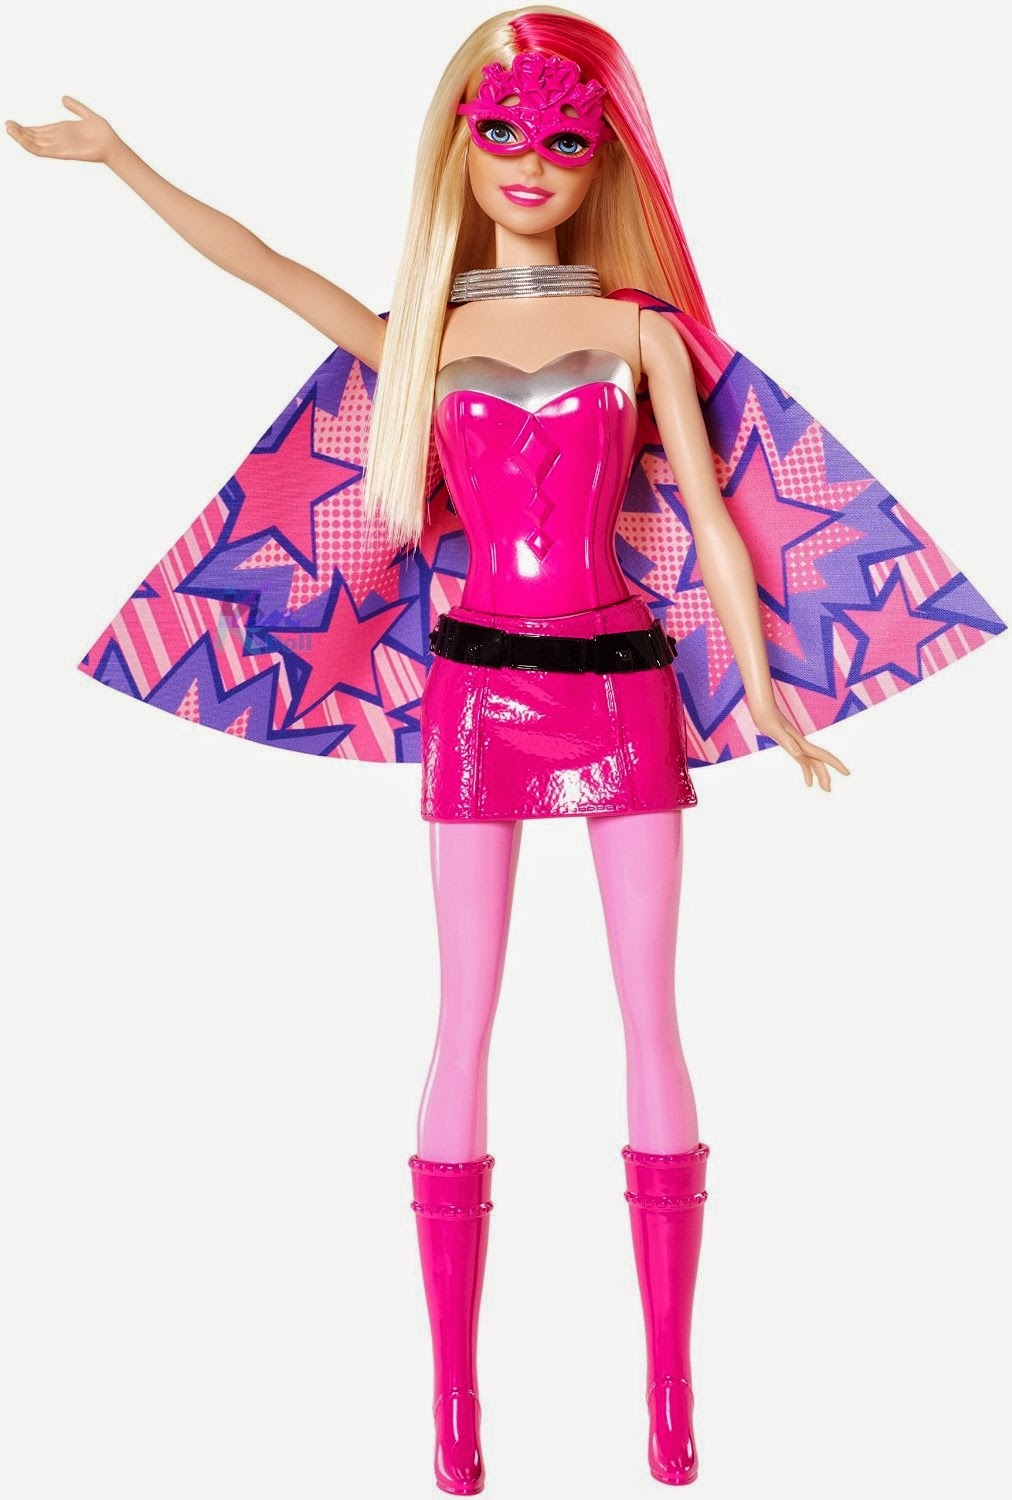 Barbie In Princess Power 2015 Barbie Girl Collectible